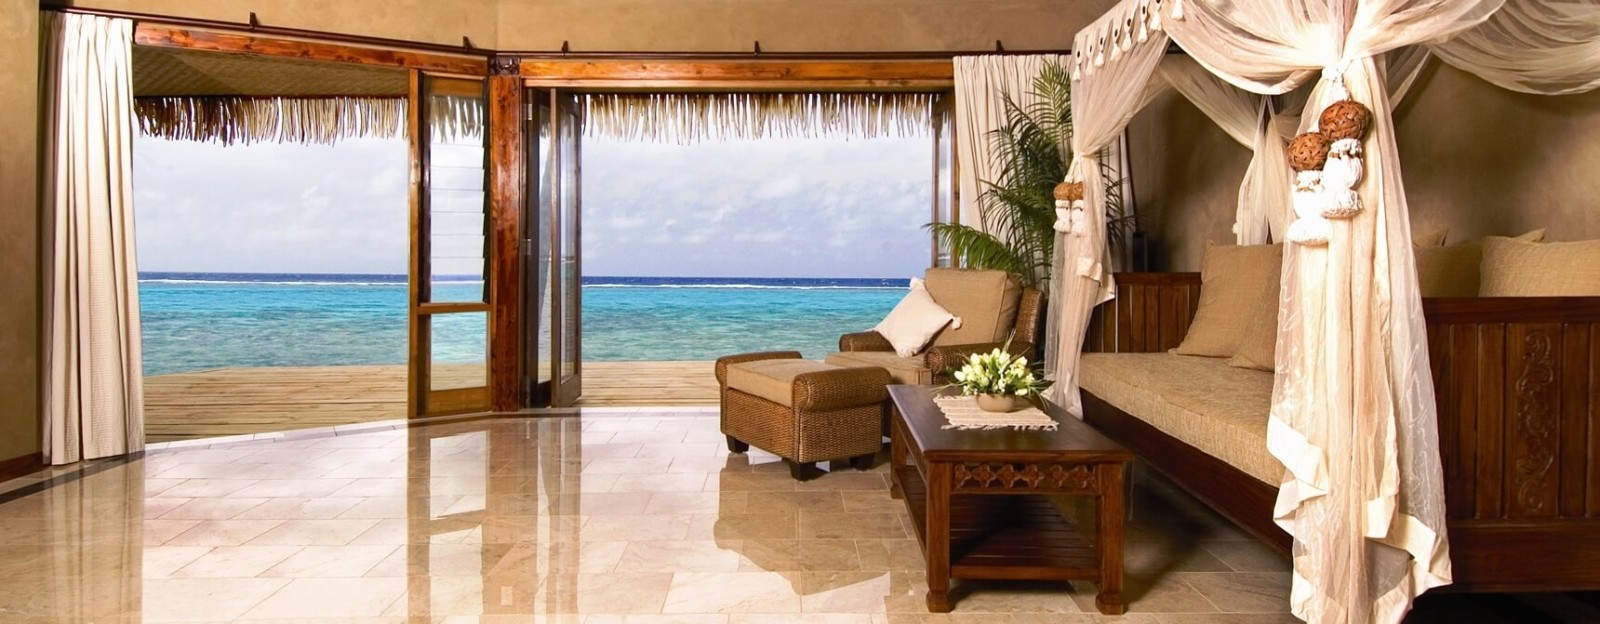 lagoon beachfront luxury villa spa rumours cook island